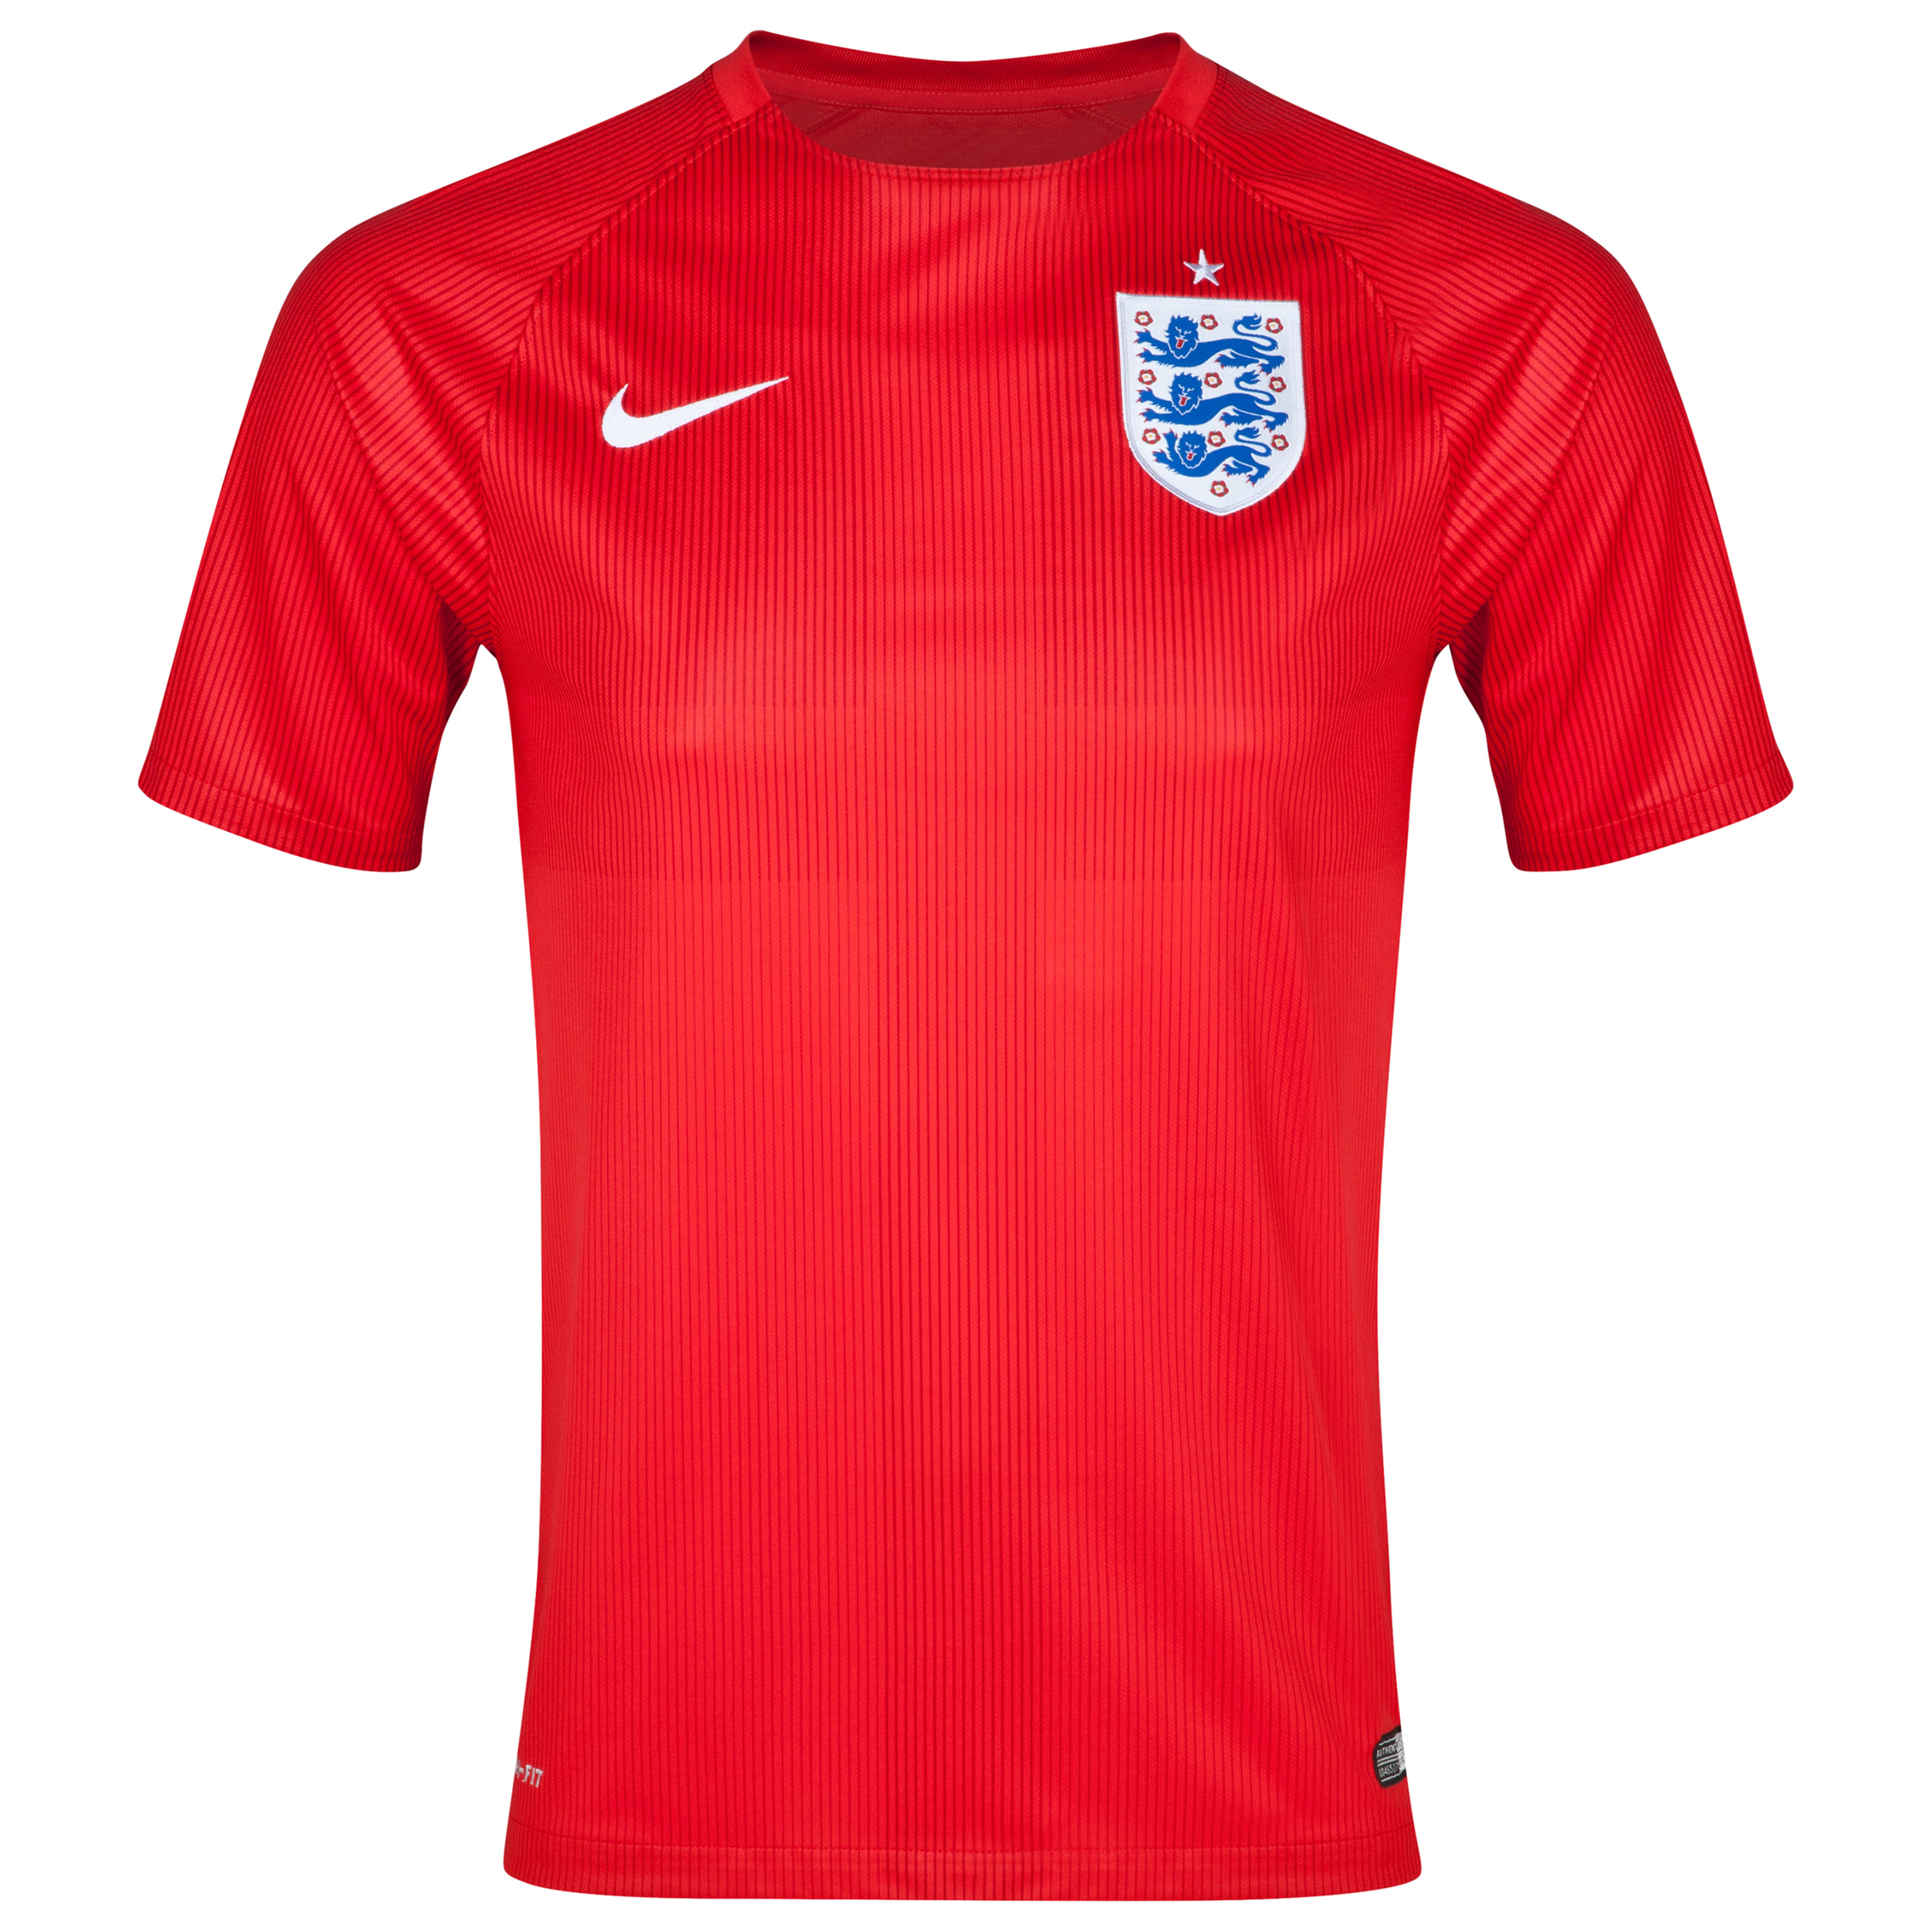 England Away Shirt 2014 Red